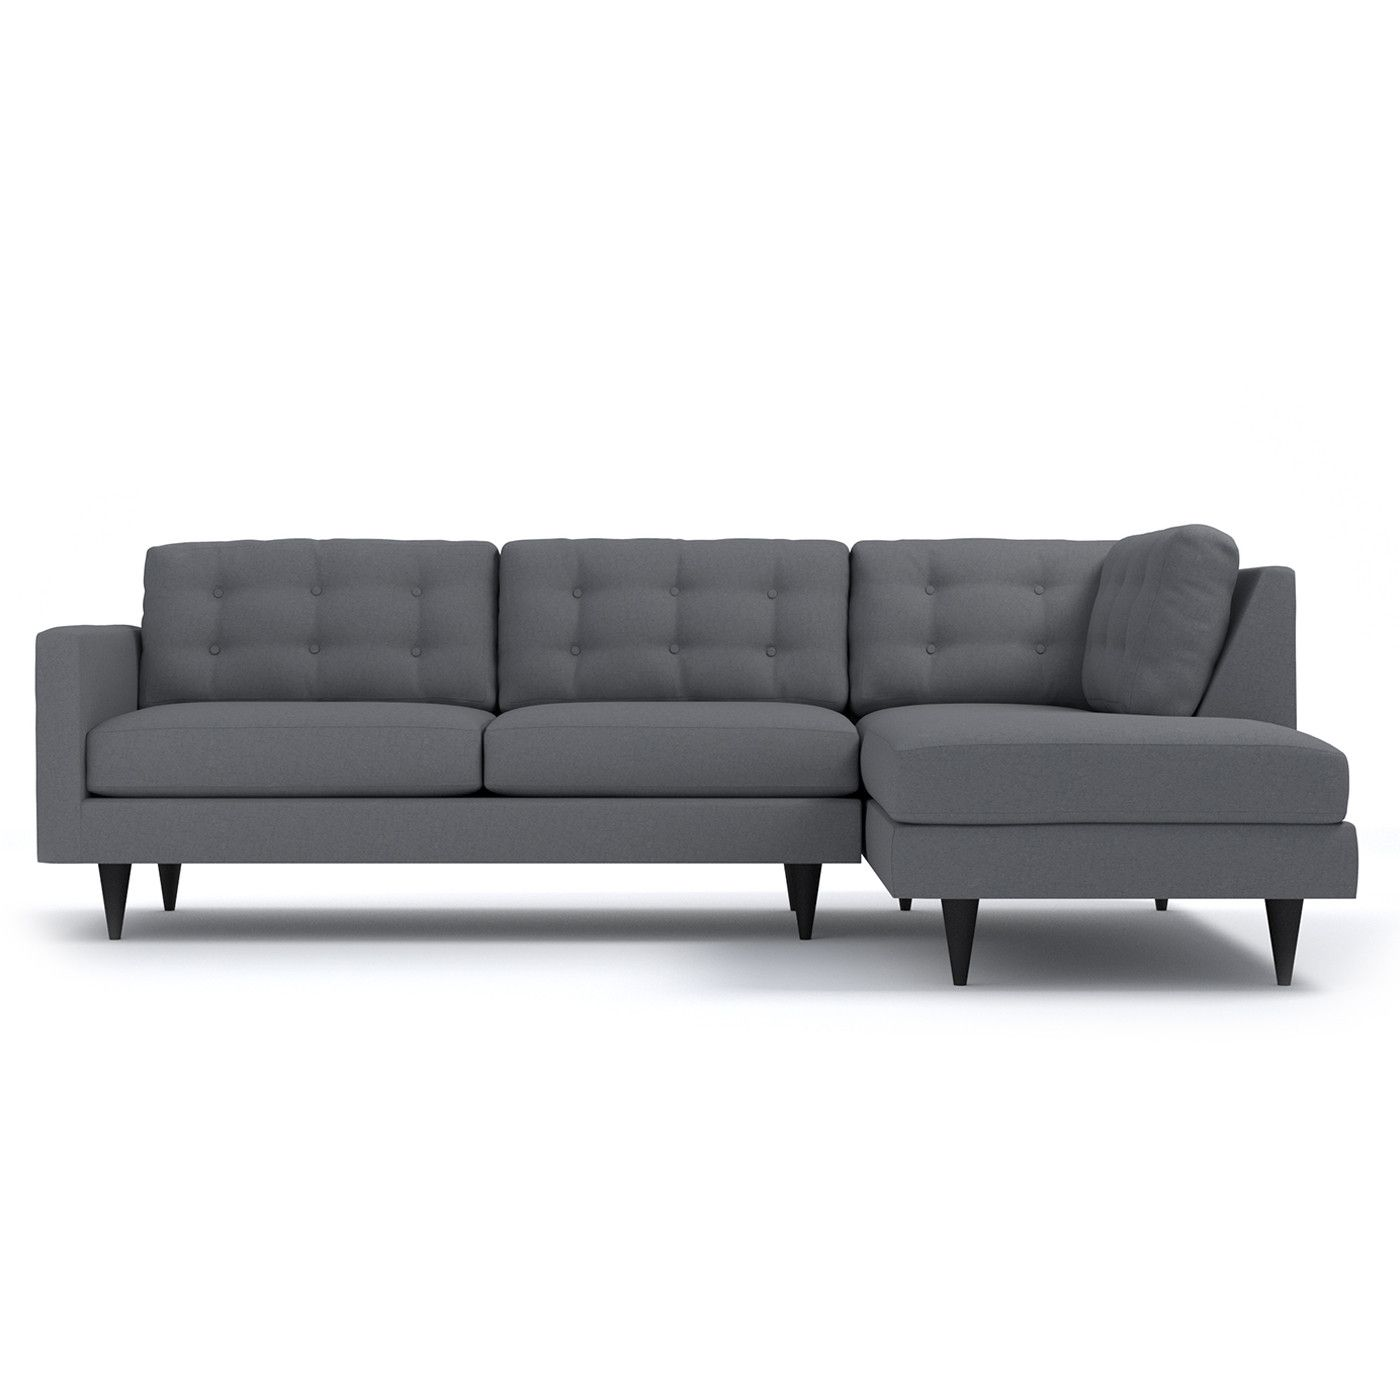 The Logan Two Piece Sectional s sleek silhouette is a wel e